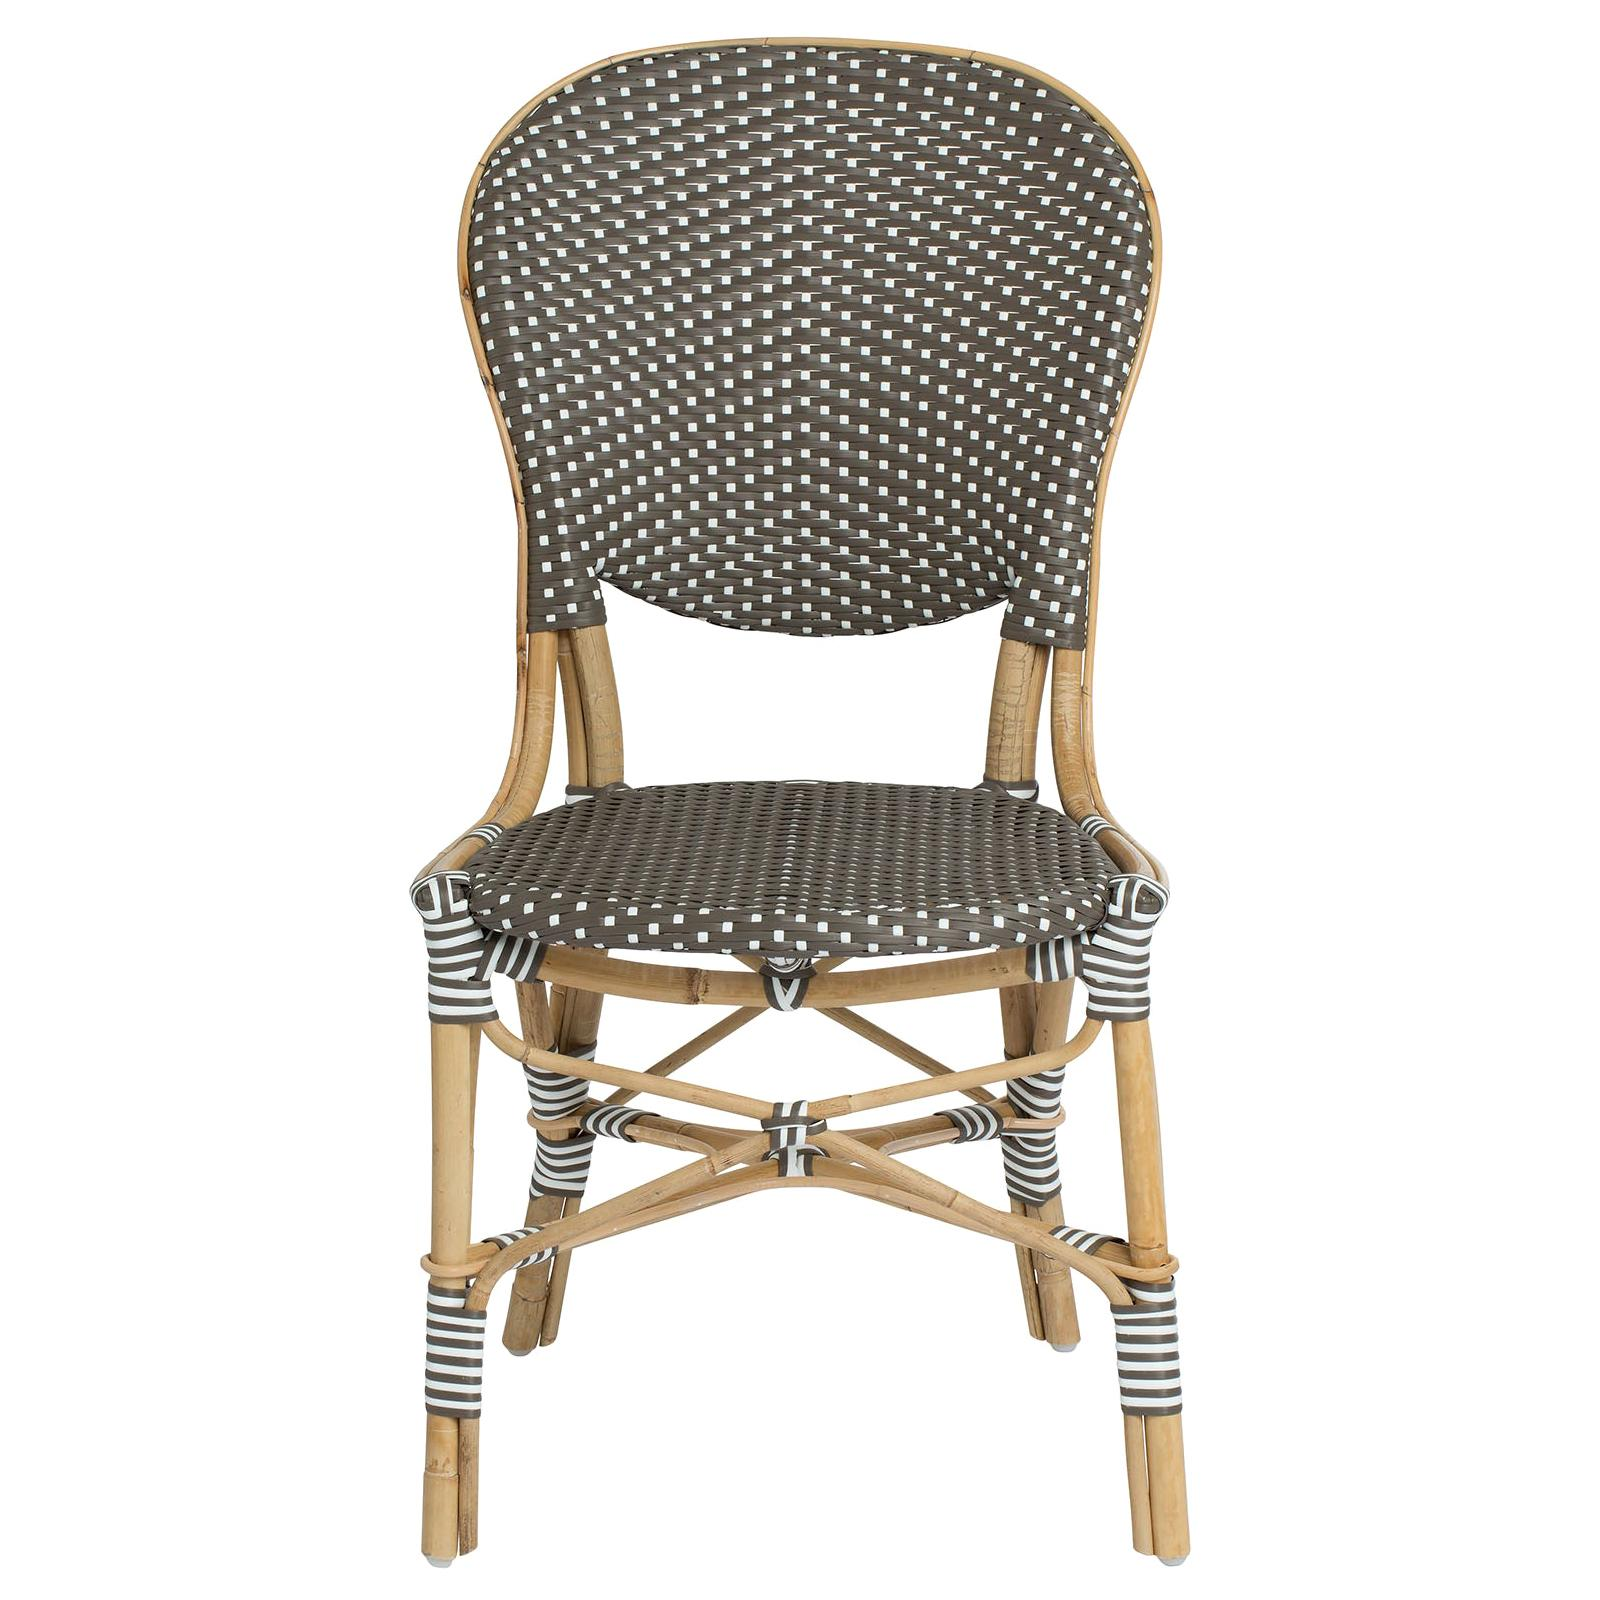 Sika Design Isabell Woven Rattan Bistro Side Chair in Cappuccino with White Dots